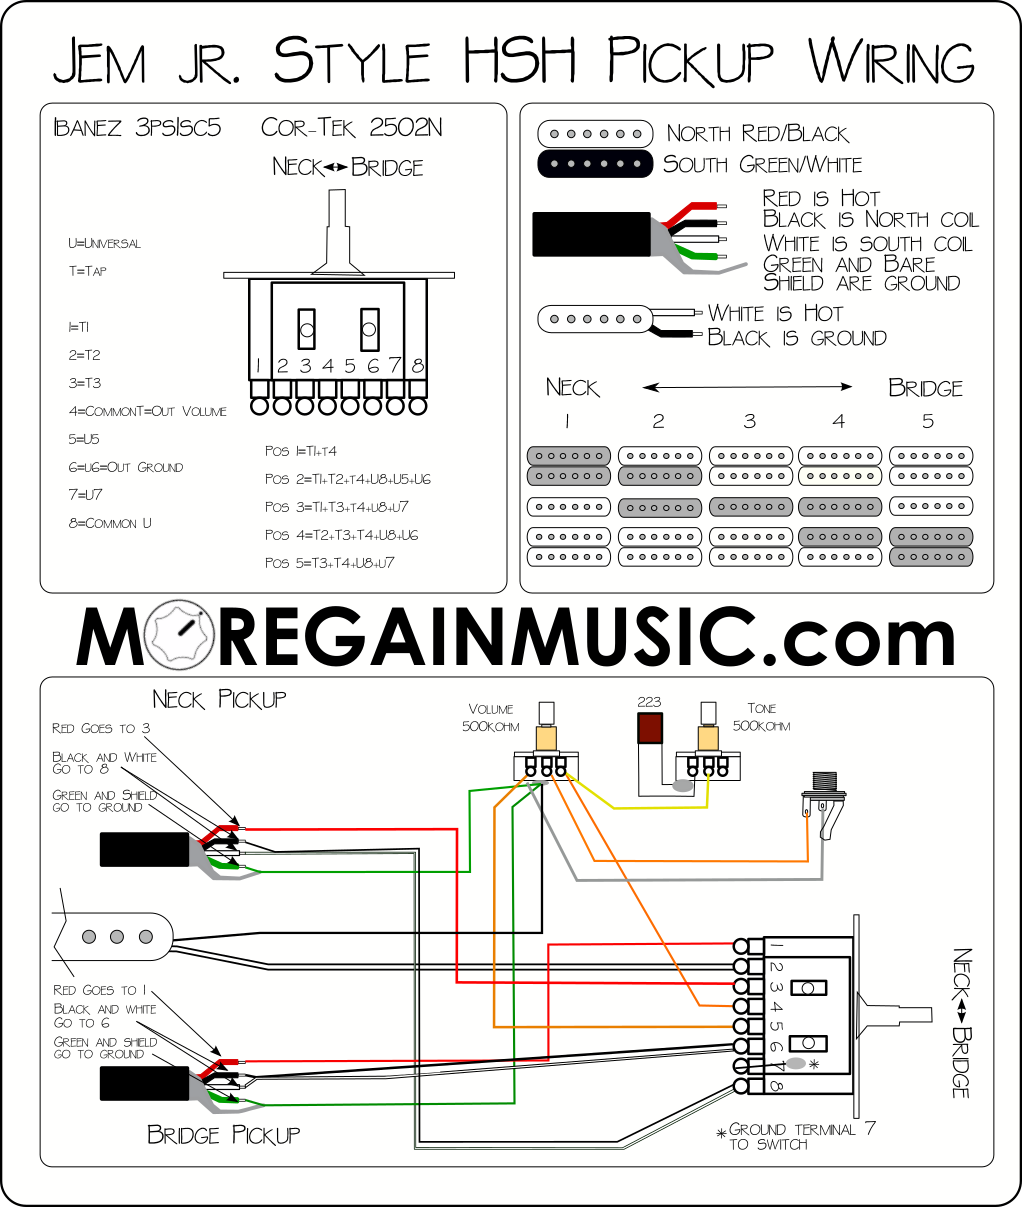 Pickup wiring diagram for HSH style Ibanez Jem jr and RG guitars